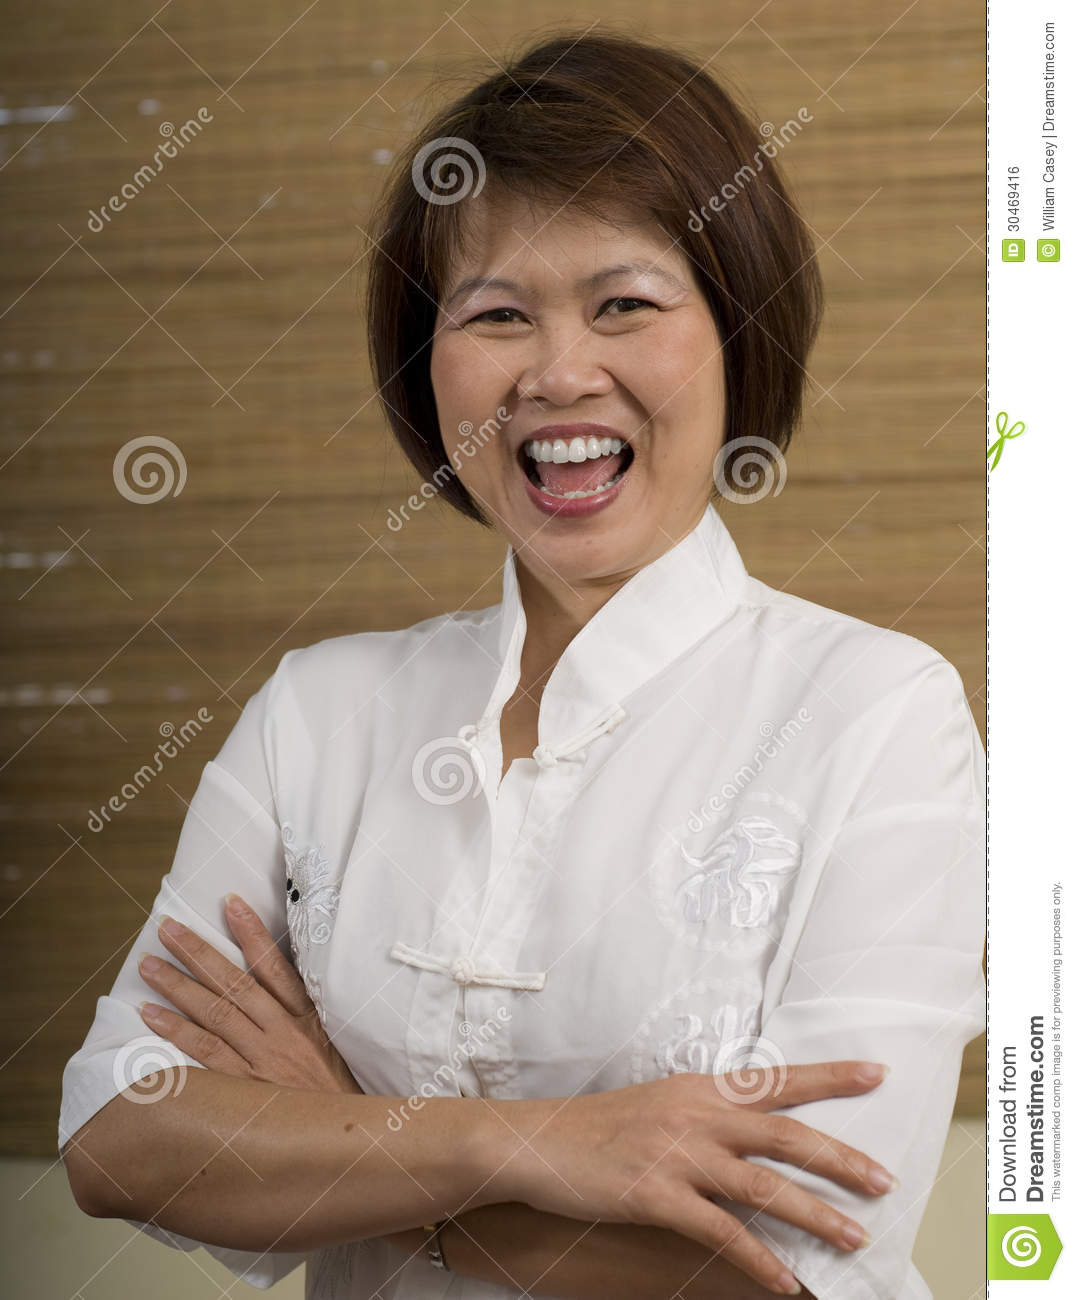 happy asian woman stock photo. image of confident, person - 30469416